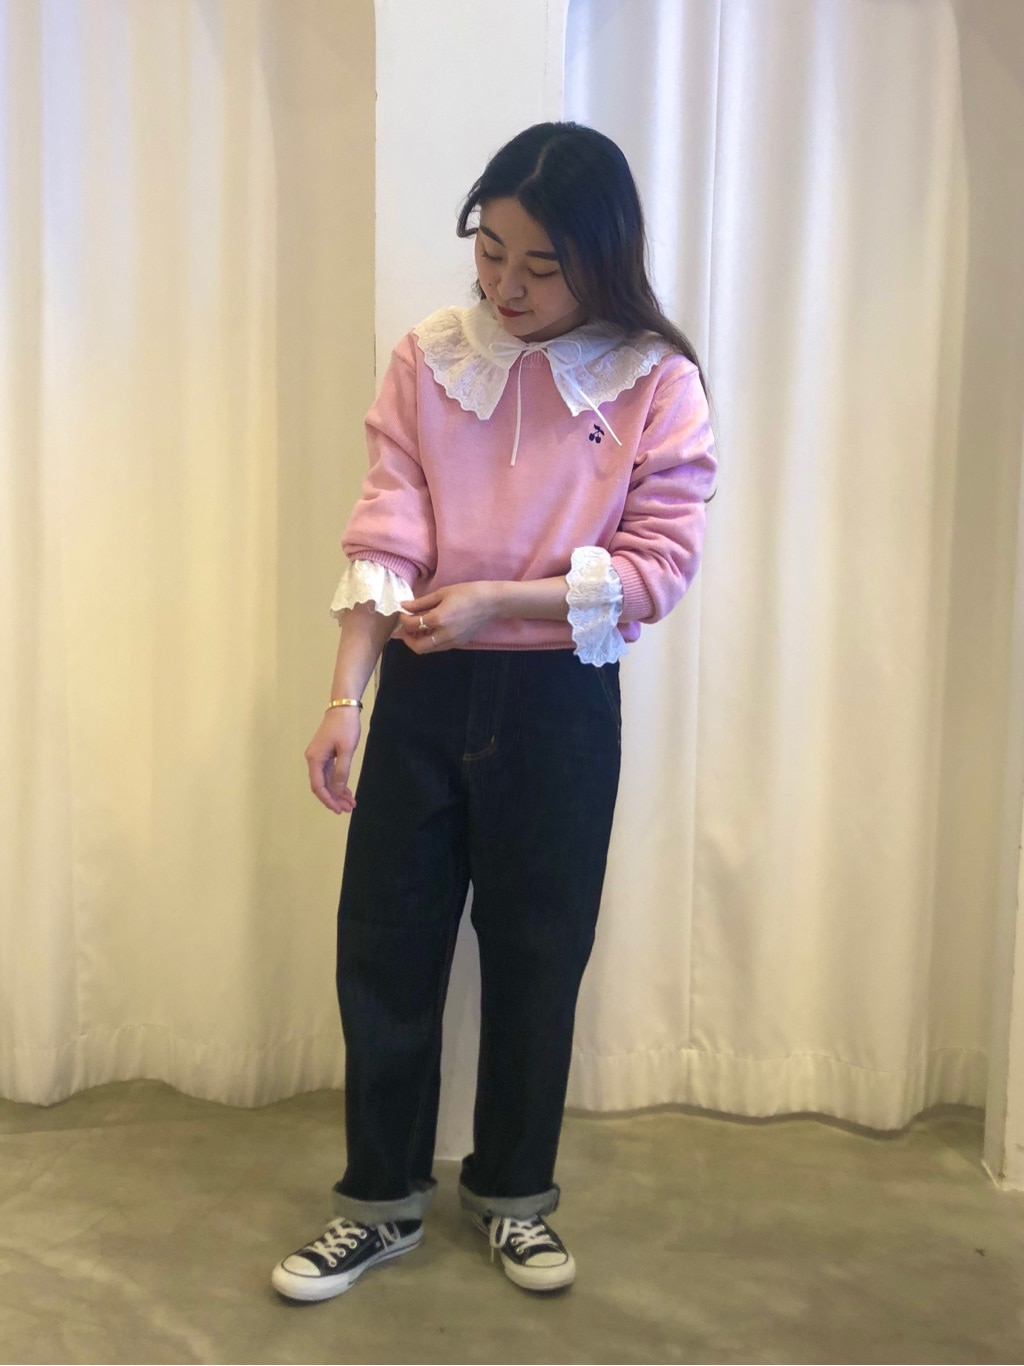 Dot and Stripes CHILD WOMAN ラフォーレ原宿 身長:153cm 2021.02.06